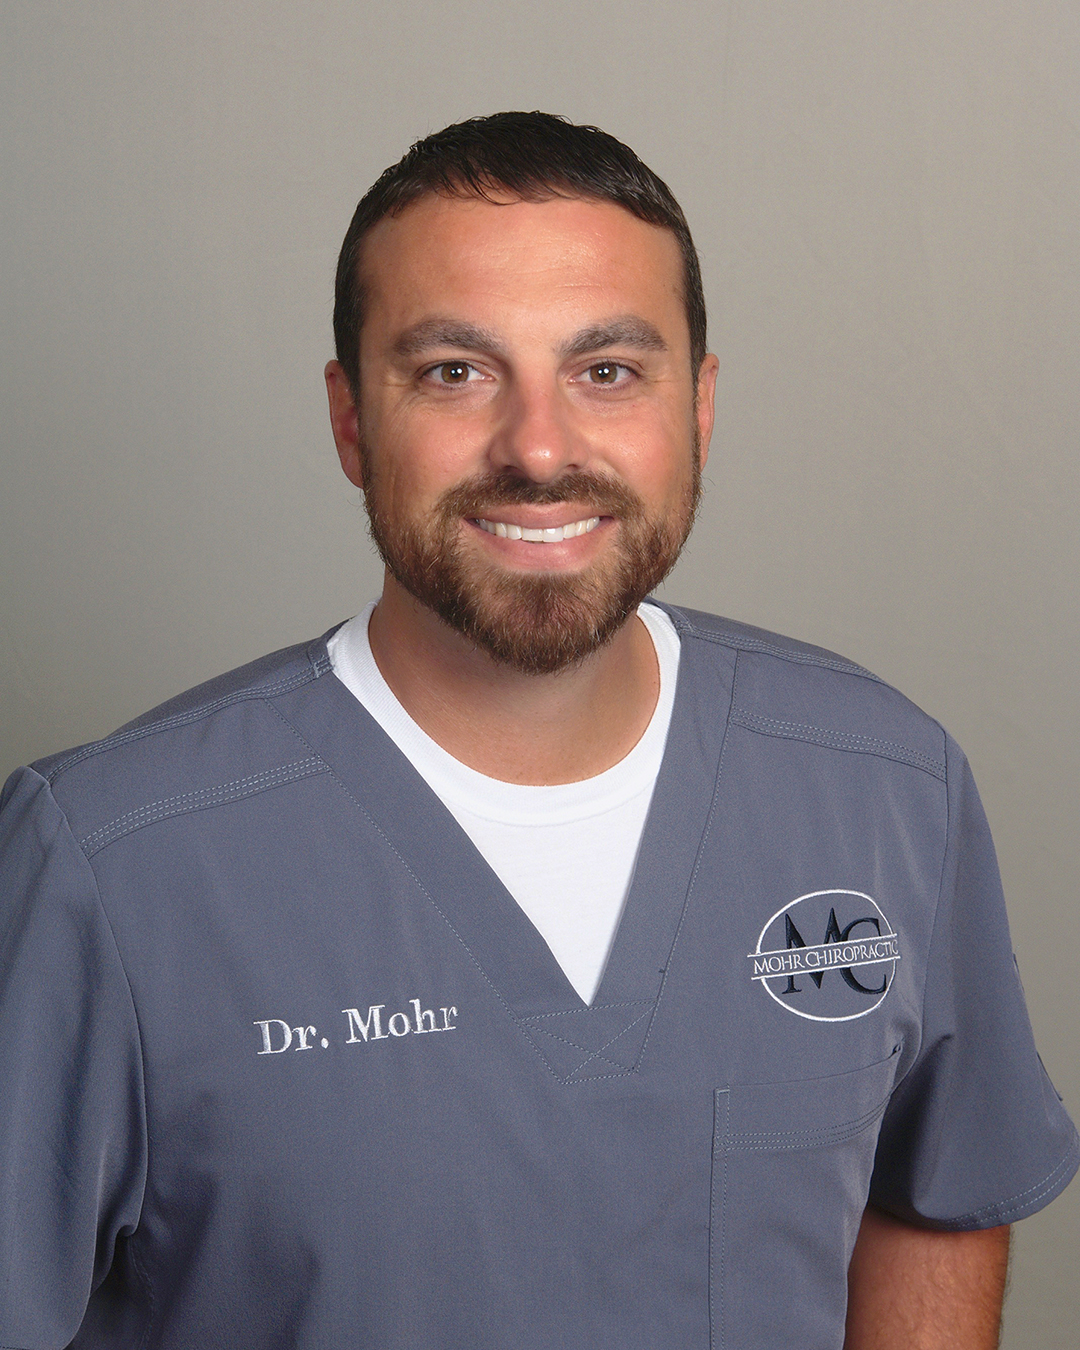 Dr Justin Mohr - Dr. Justin Mohr is a second generation chiropractor. He has been a chiropractic patient his entire life so he knows firsthand what it is like to be the patient and the provider. Dr. Mohr grew up in Brazil, Indiana and always knew that chiropractic was the career path he wanted to take. Dr. Mohr graduated from Northview High School and then attended Indiana State University for his pre-chiropractic coursework and also received a bachelor's degree in psychology. Upon graduation, Dr. Mohr attended Logan College of Chiropractic where he was able to earn a second bachelor's degree in life science in route to completing the rigorous coursework and training to becoming a Doctor of Chiropractic. Dr. Mohr graduated from Logan College of Chiropractic in December of 2007.Dr. Mohr is board certified in chiropractic and physiotherapy. He is a member of the Avon Chamber of Commerce, the Indiana State Chiropractic Association, the Logan College Alumni Association, Integrity Doctors, and Harvest Bible Chapel in Avon. Dr. Mohr enjoys spending time with his family, being outdoors, and traveling.Dr. Justin specializes in helping his patients treat their headaches and low back pain through the use of Chiropractic care as well as home management.